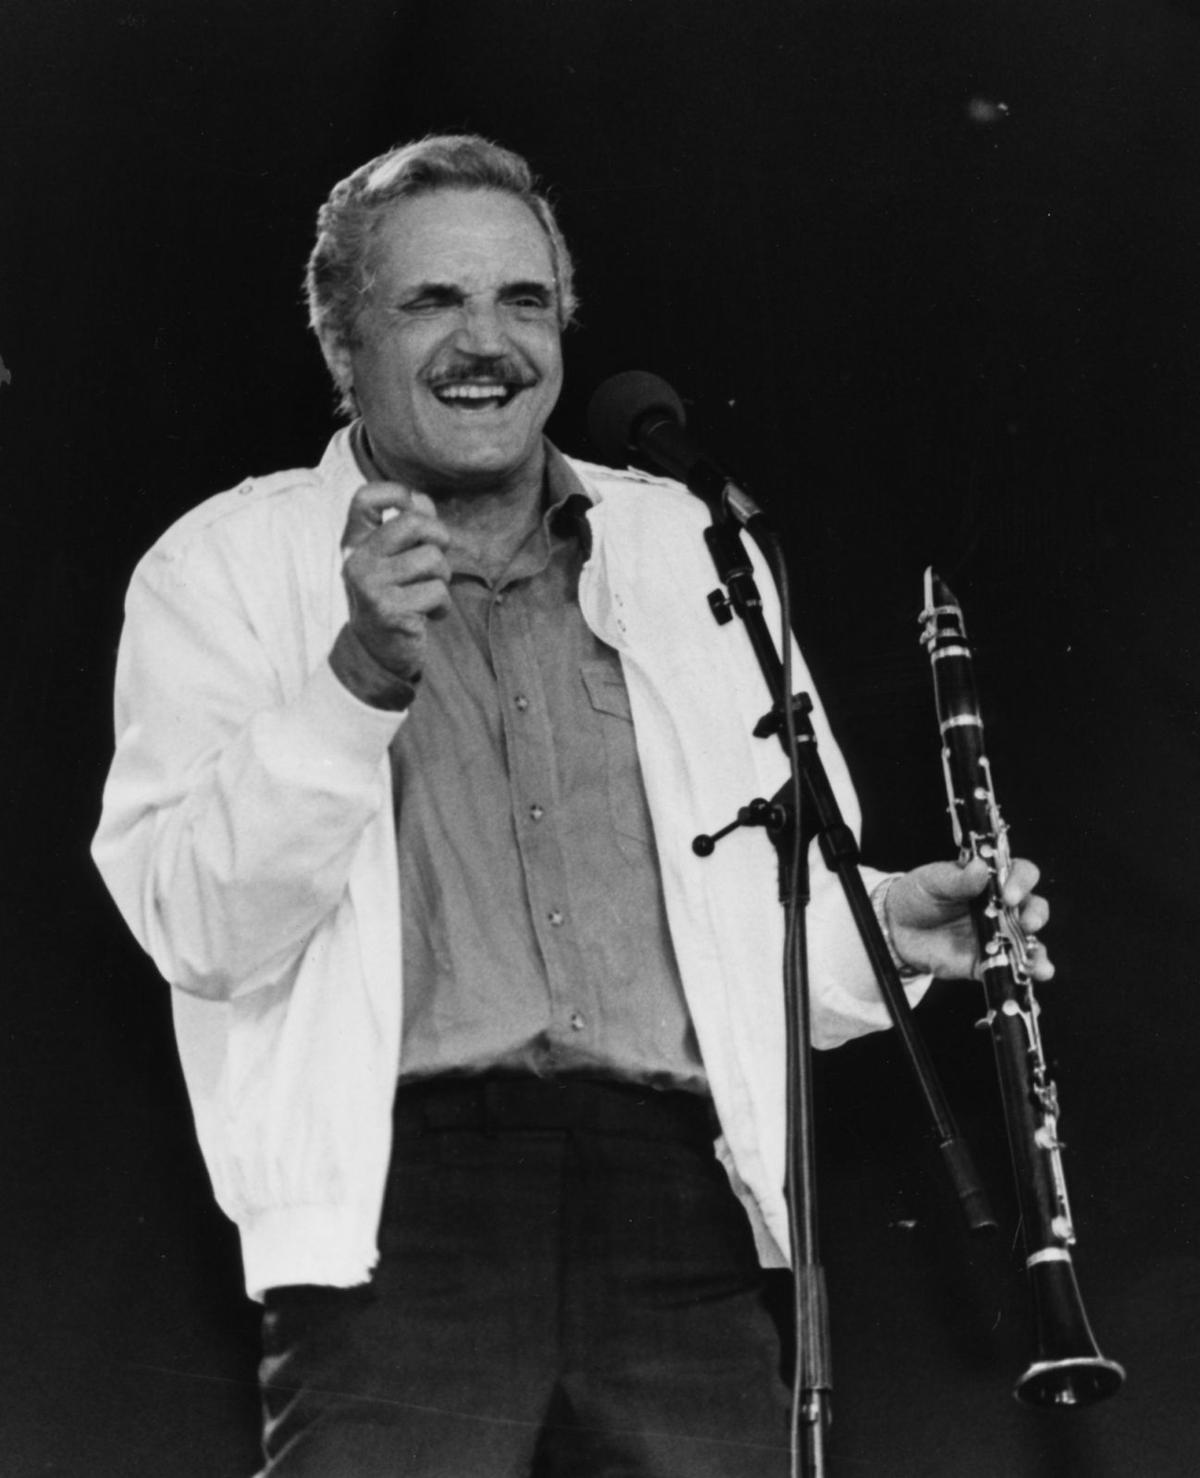 Singer and actor Hal Linden plays the clarinet and sings for the crowd ...